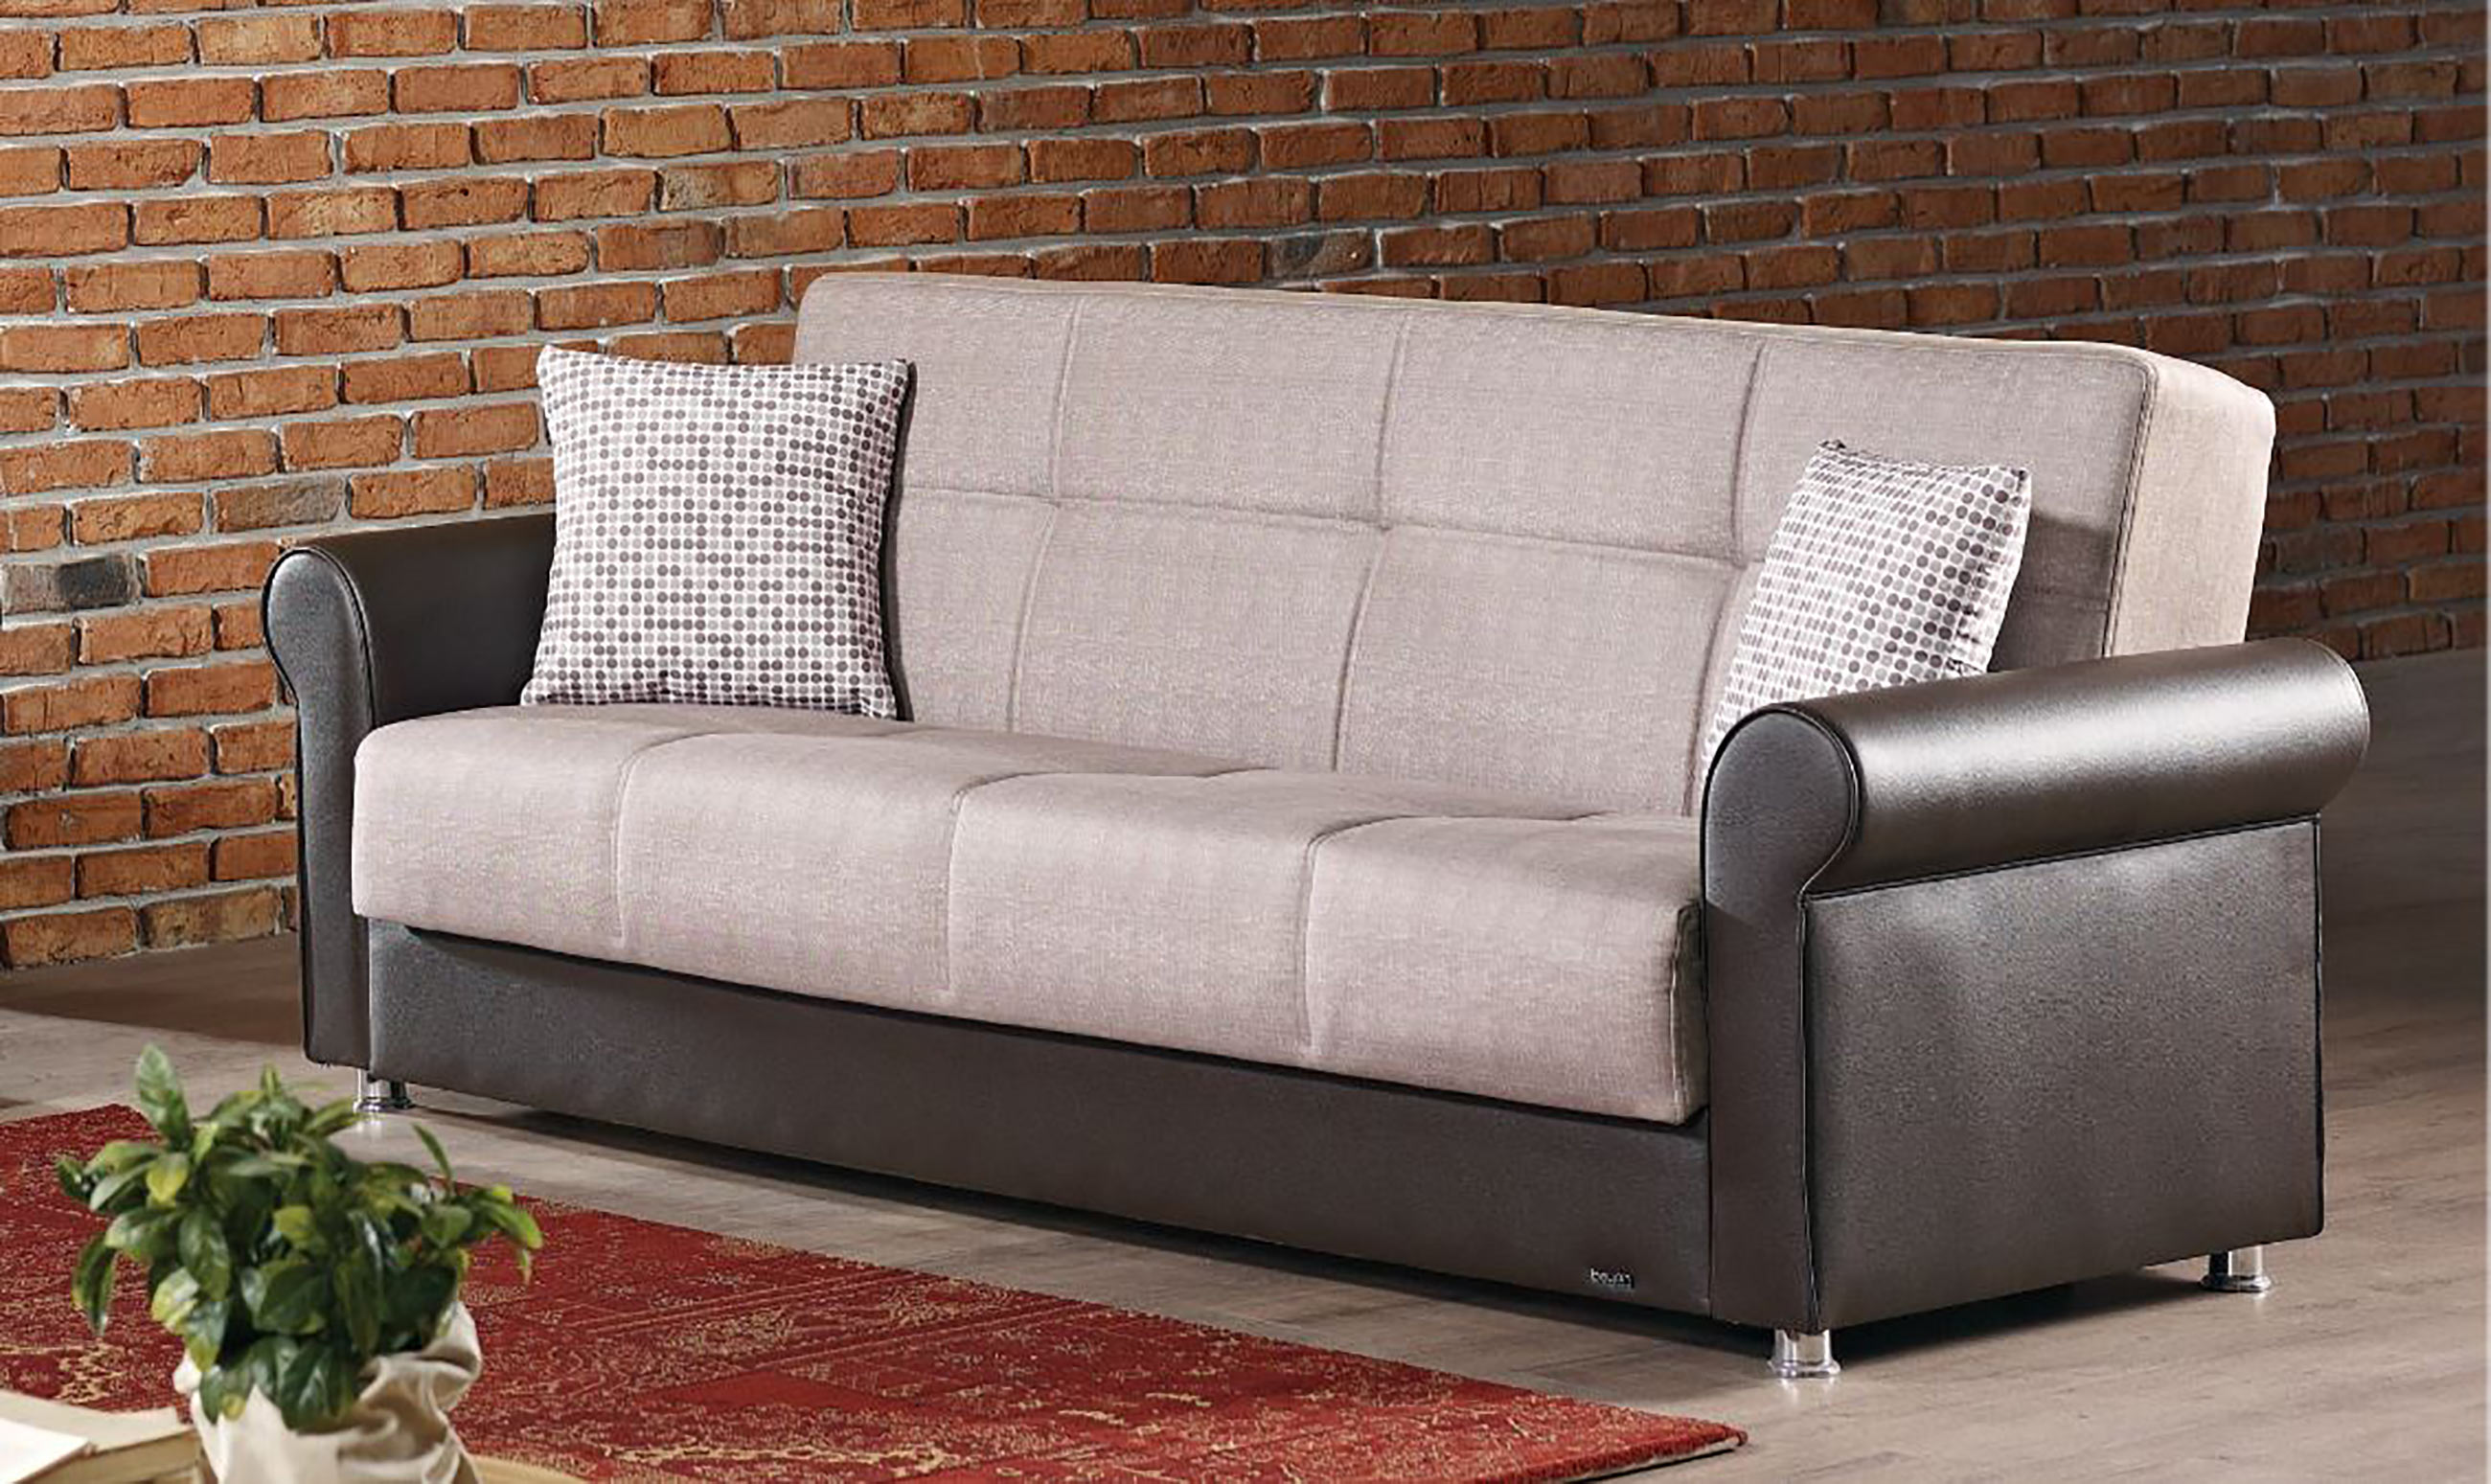 Michigan light brown fabric sofa bed by empire furniture usa for Divan furniture usa